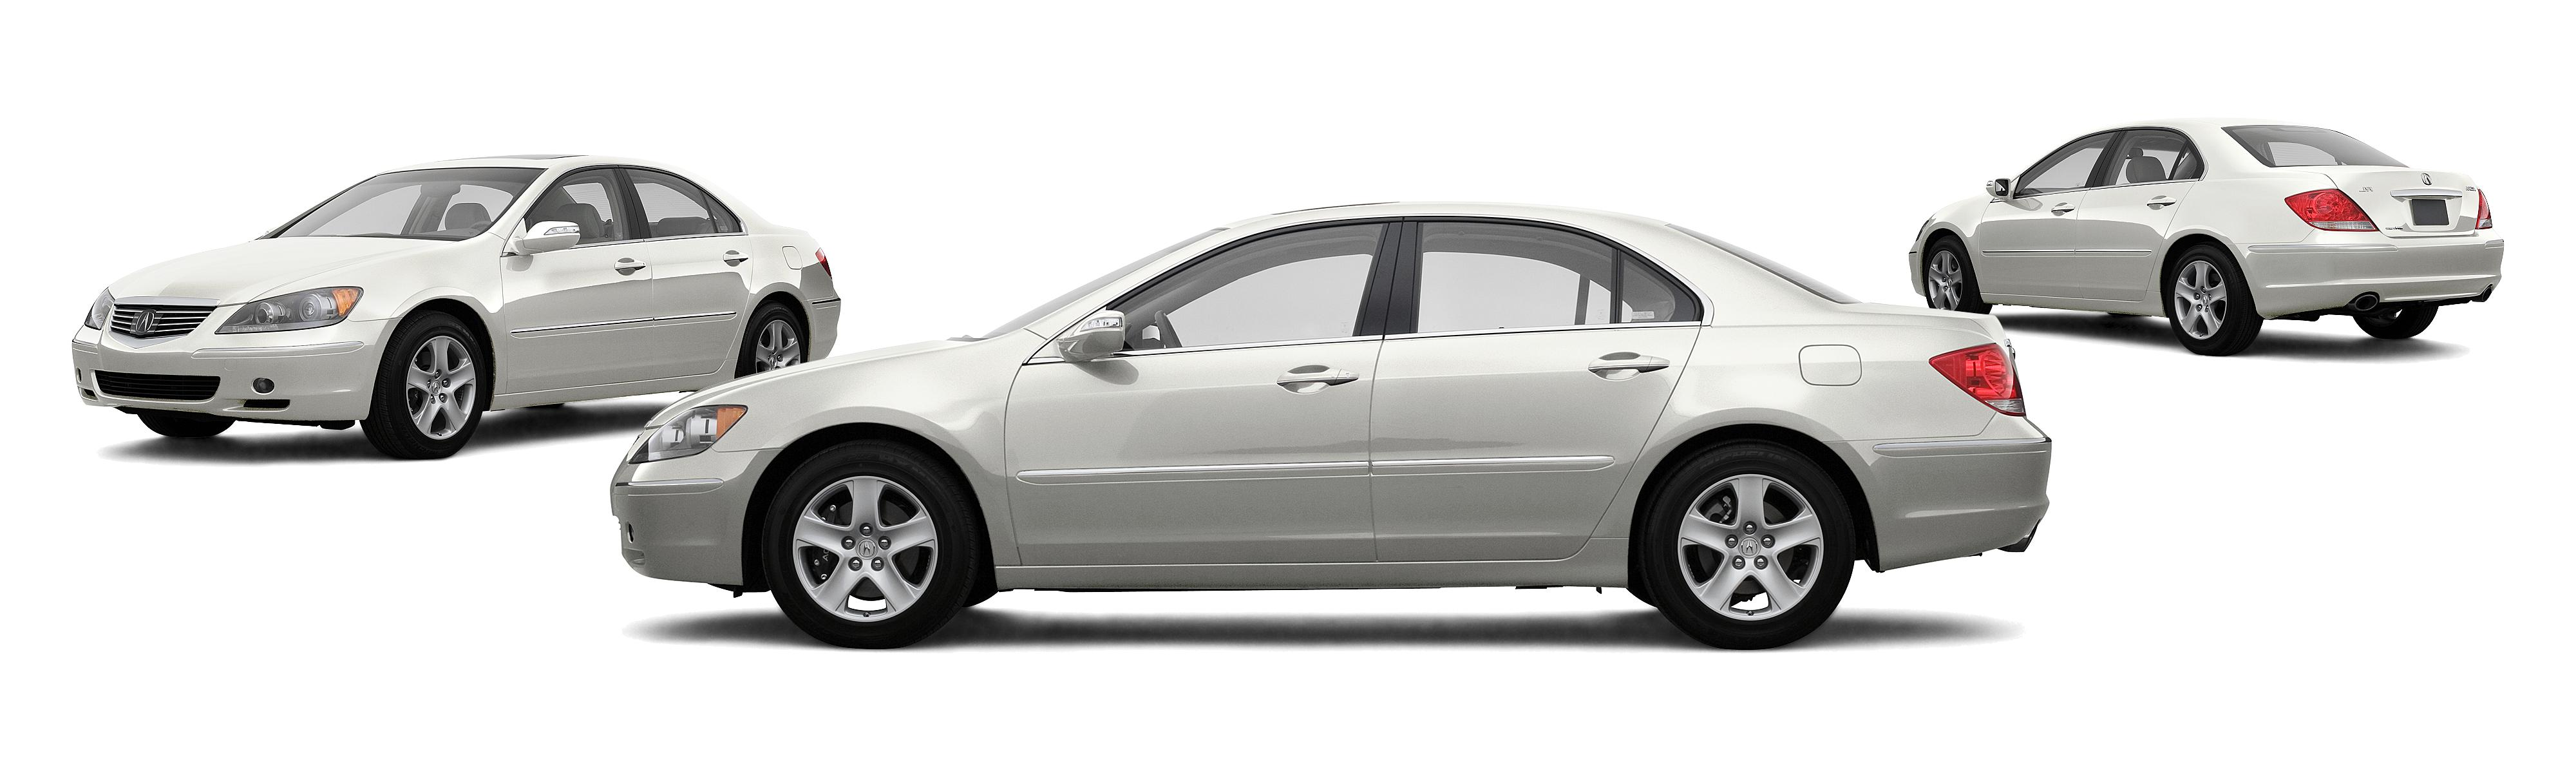 2007 Acura RL SH AWD 4dr Sedan w CMBS and PAX Tires Research